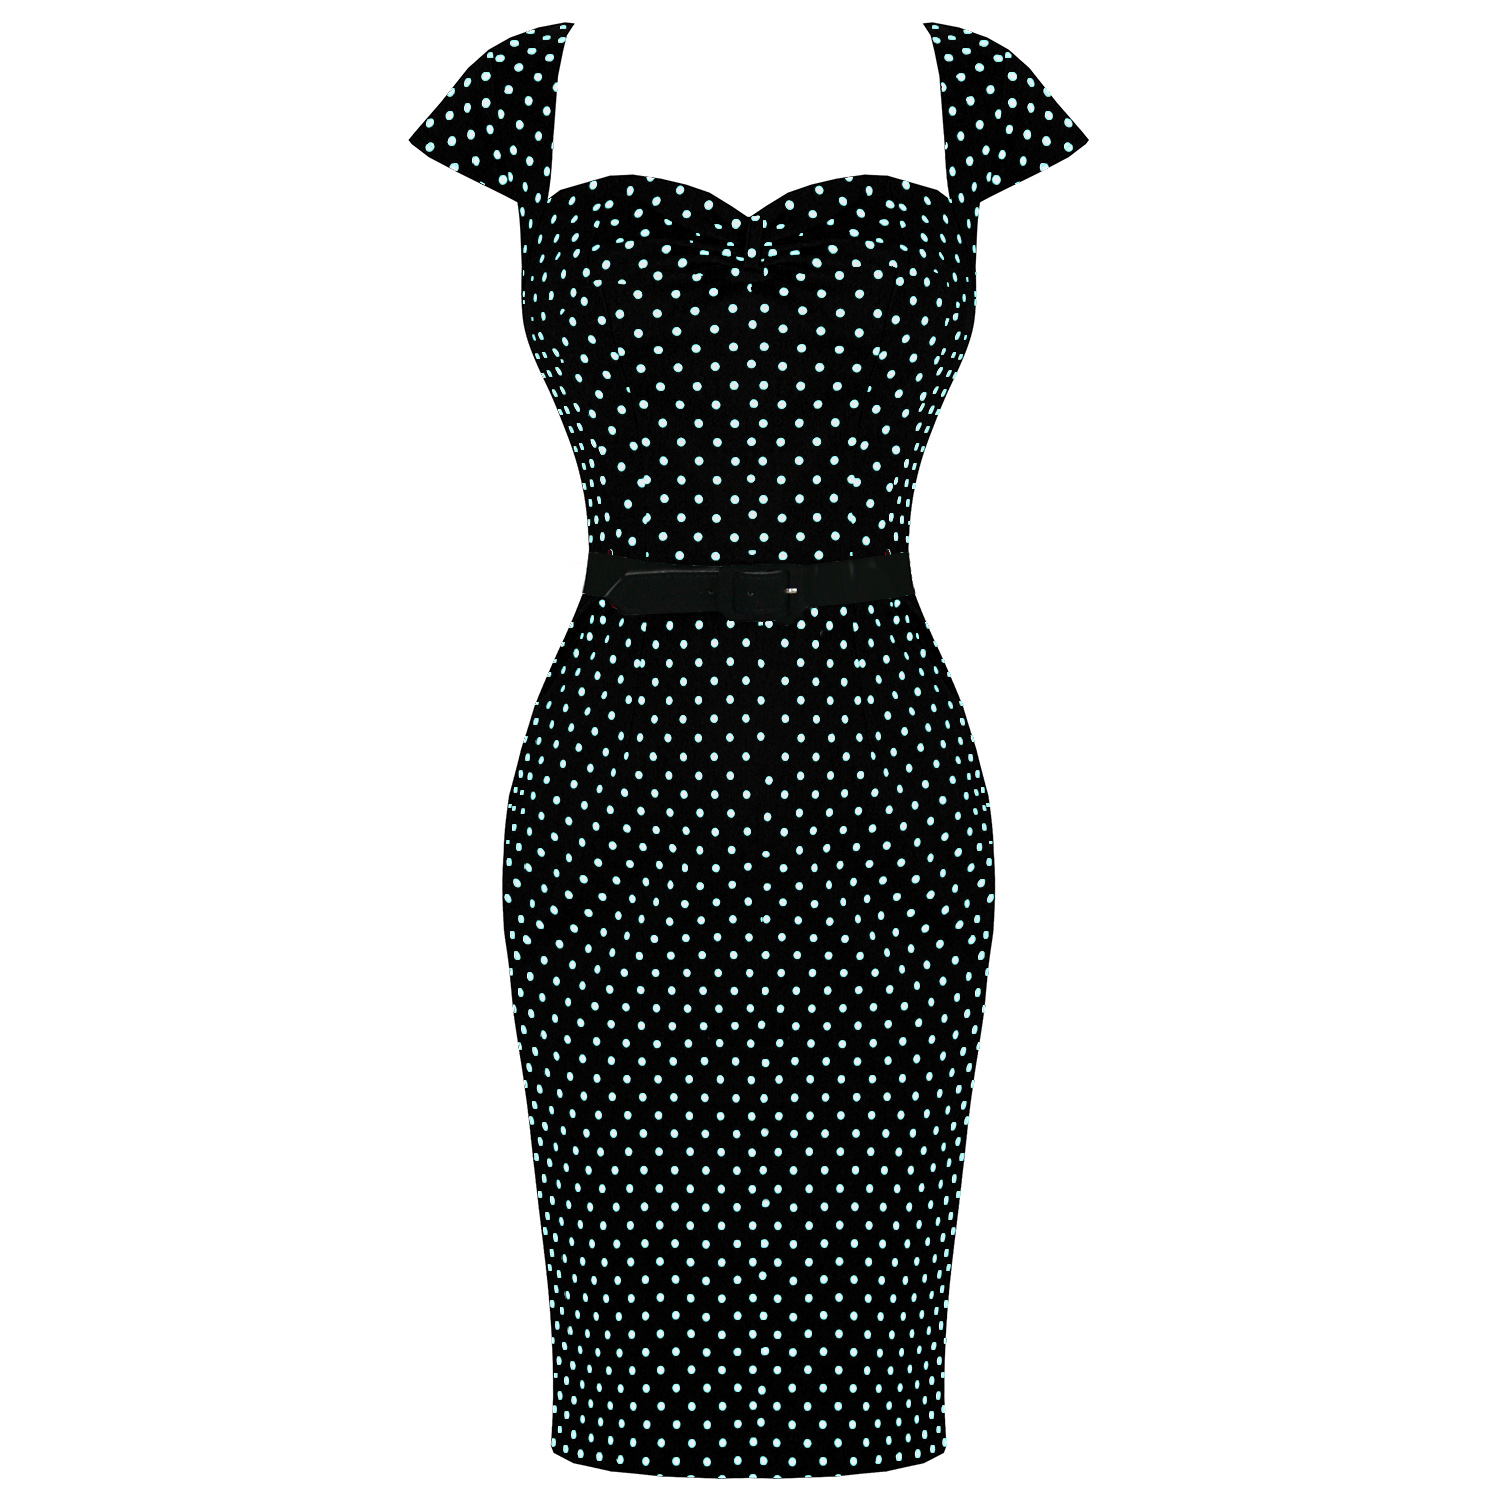 heii bunny pencil dress black white polka dot retro vintage style sexy fashion 50 years. Black Bedroom Furniture Sets. Home Design Ideas